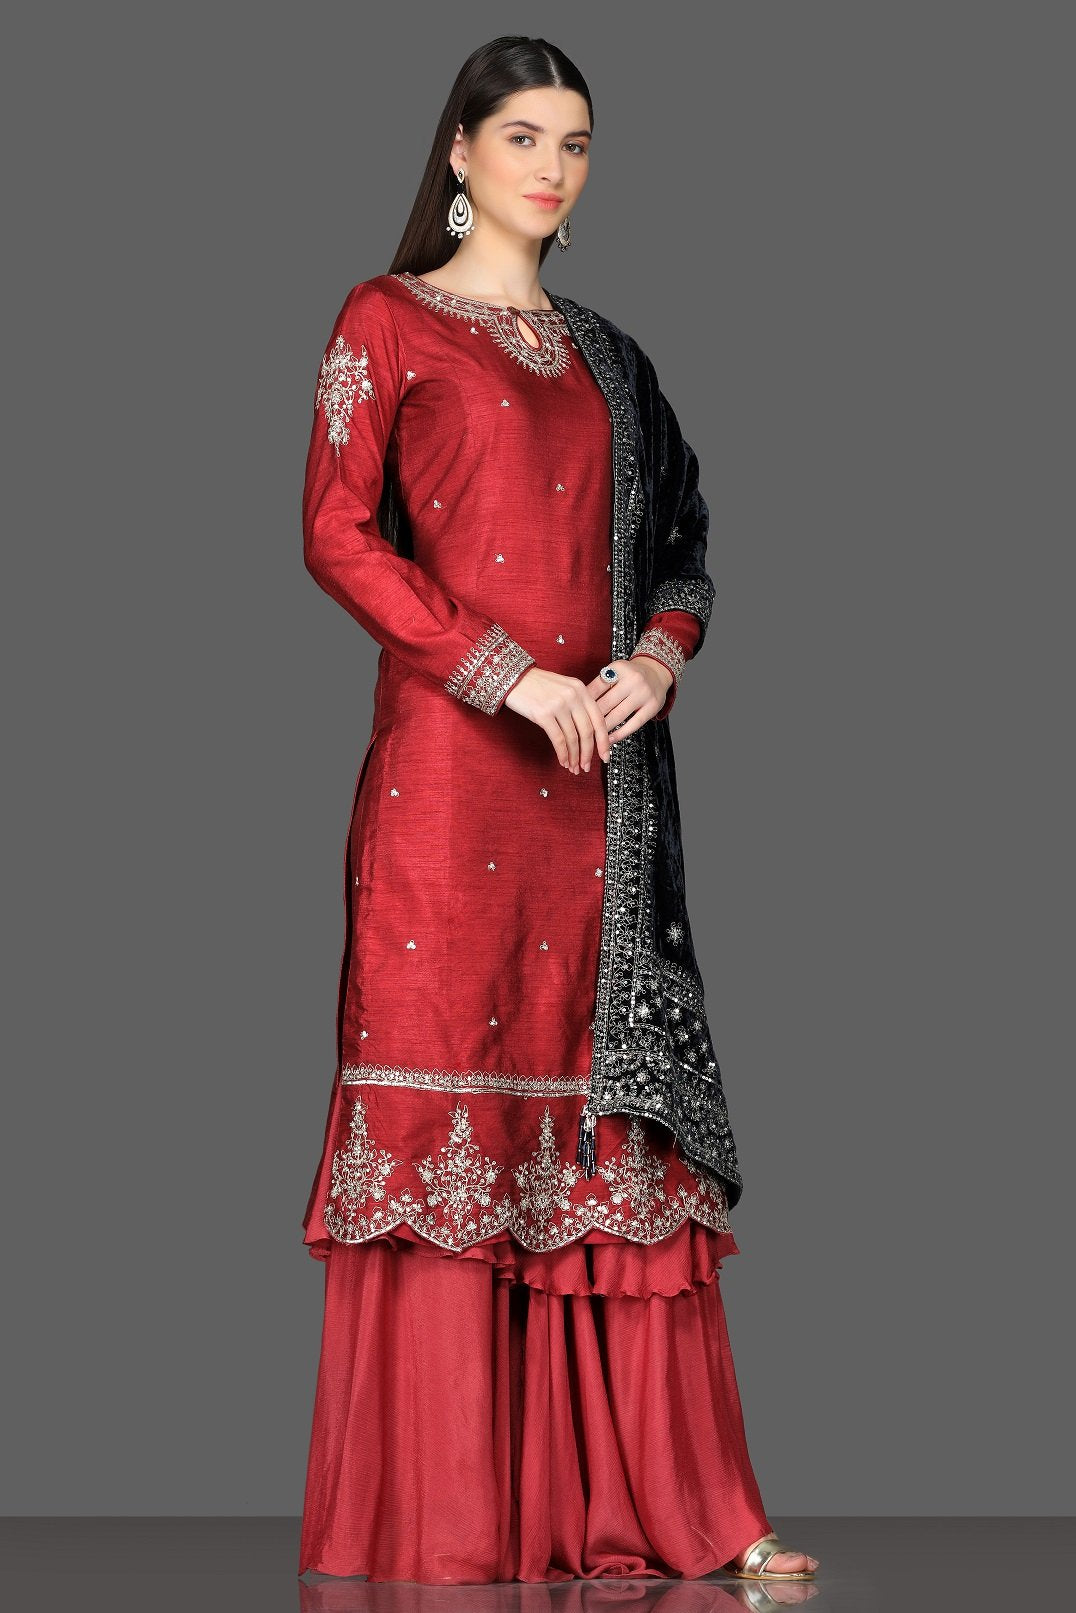 Shop gorgeous red embroidered palazzo suit online in USA with black velvet dupatta. Dazzle on weddings and special occasions with exquisite Indian designer dresses, sharara suits, Anarkali suits from Pure Elegance Indian fashion store in USA.-right